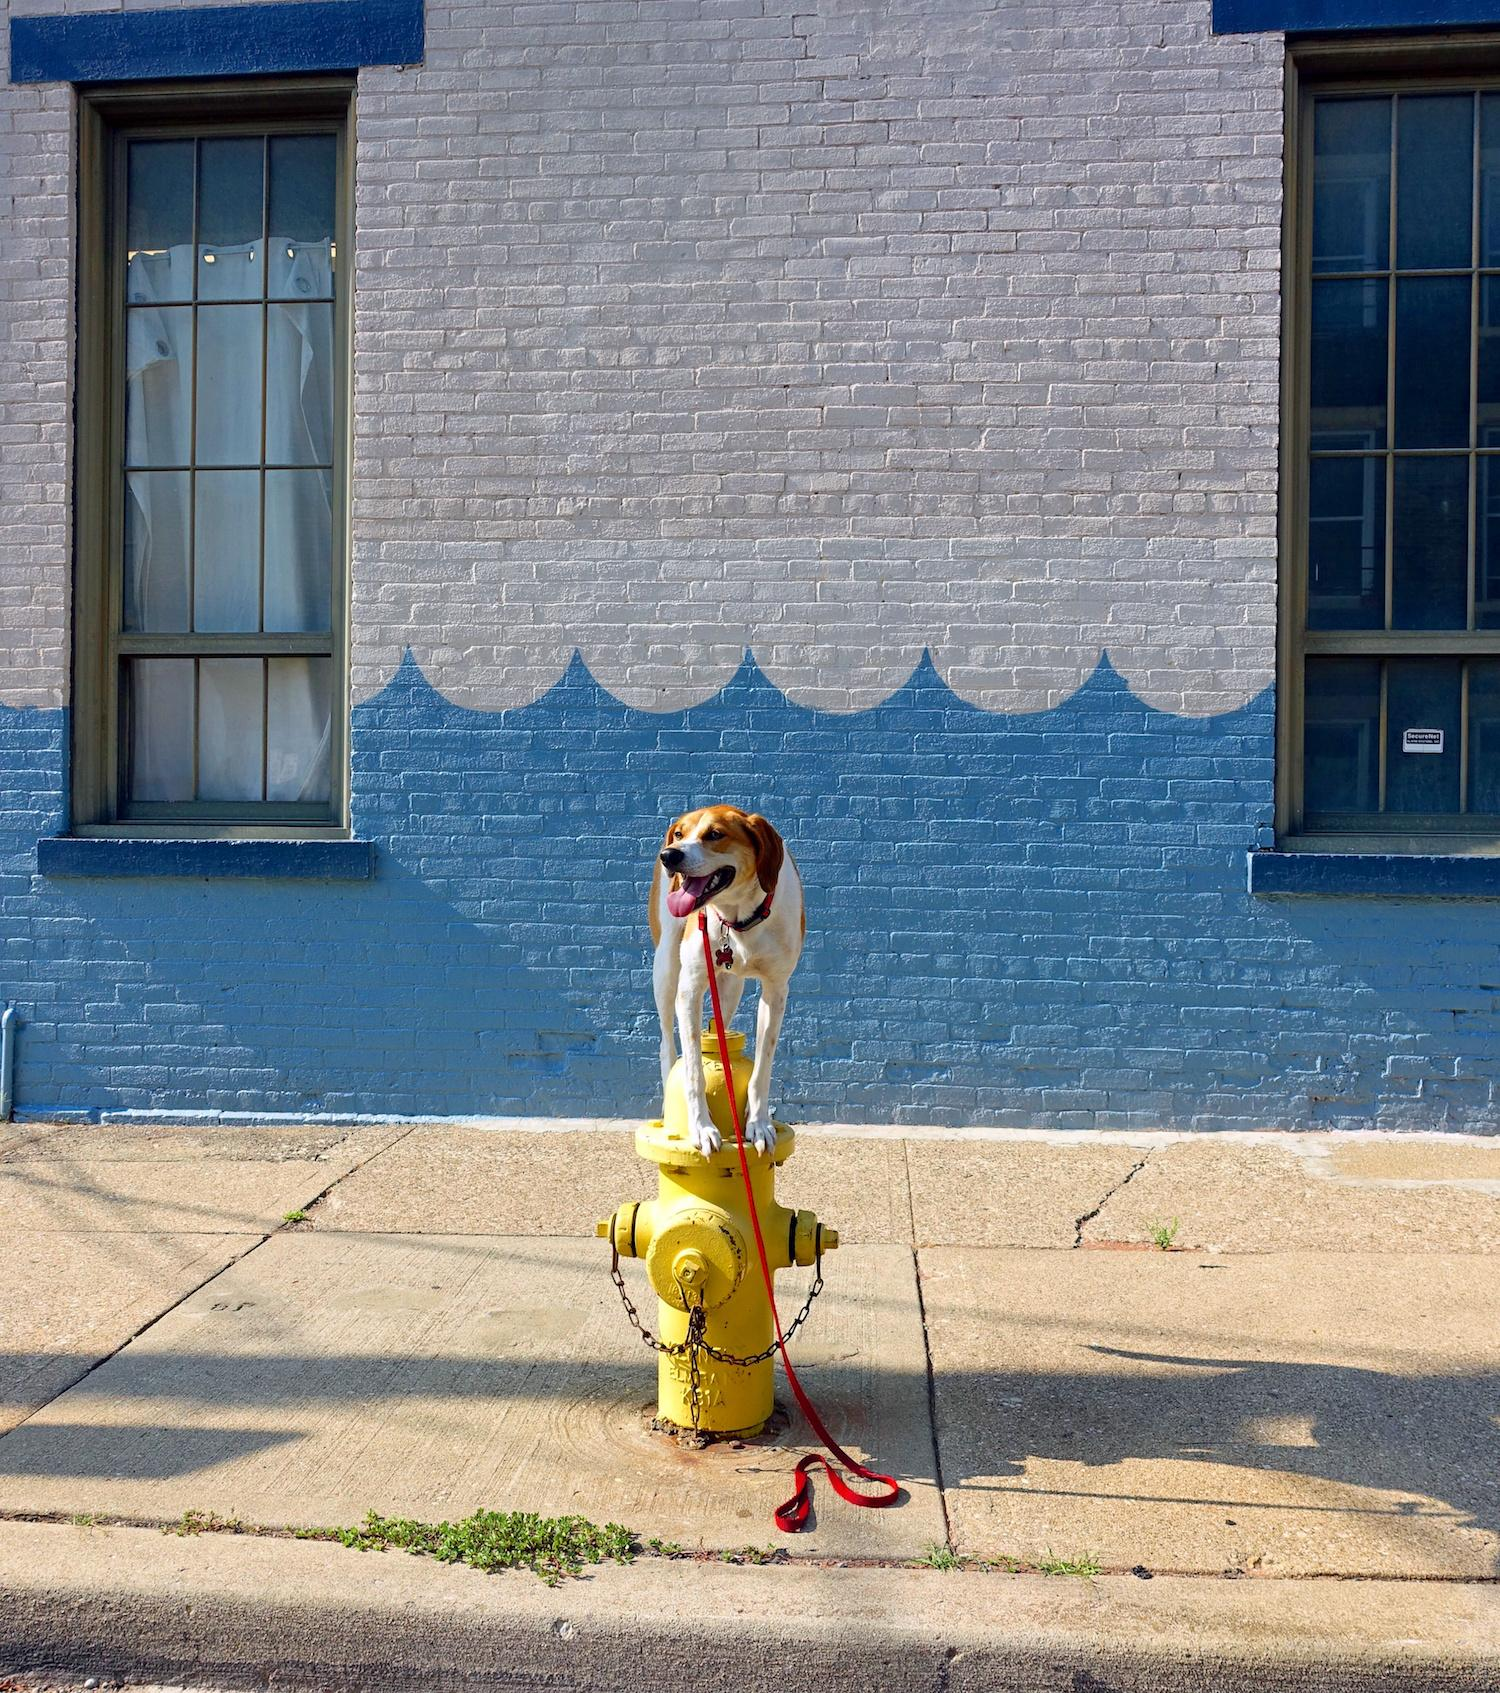 LOCATION: Wave Pool Gallery / Mollie is a local Instagram celebrity. Famous for posing on fire hydrants in front of ArtWorks murals (and other Cincy landmarks), this hound dog has officially stolen our hearts. You can follow her adventures on Instagram @molliethehounddoggie / Image: Patti Mossey (Mollie's owner and #1 fan) // Published: 5.1.18